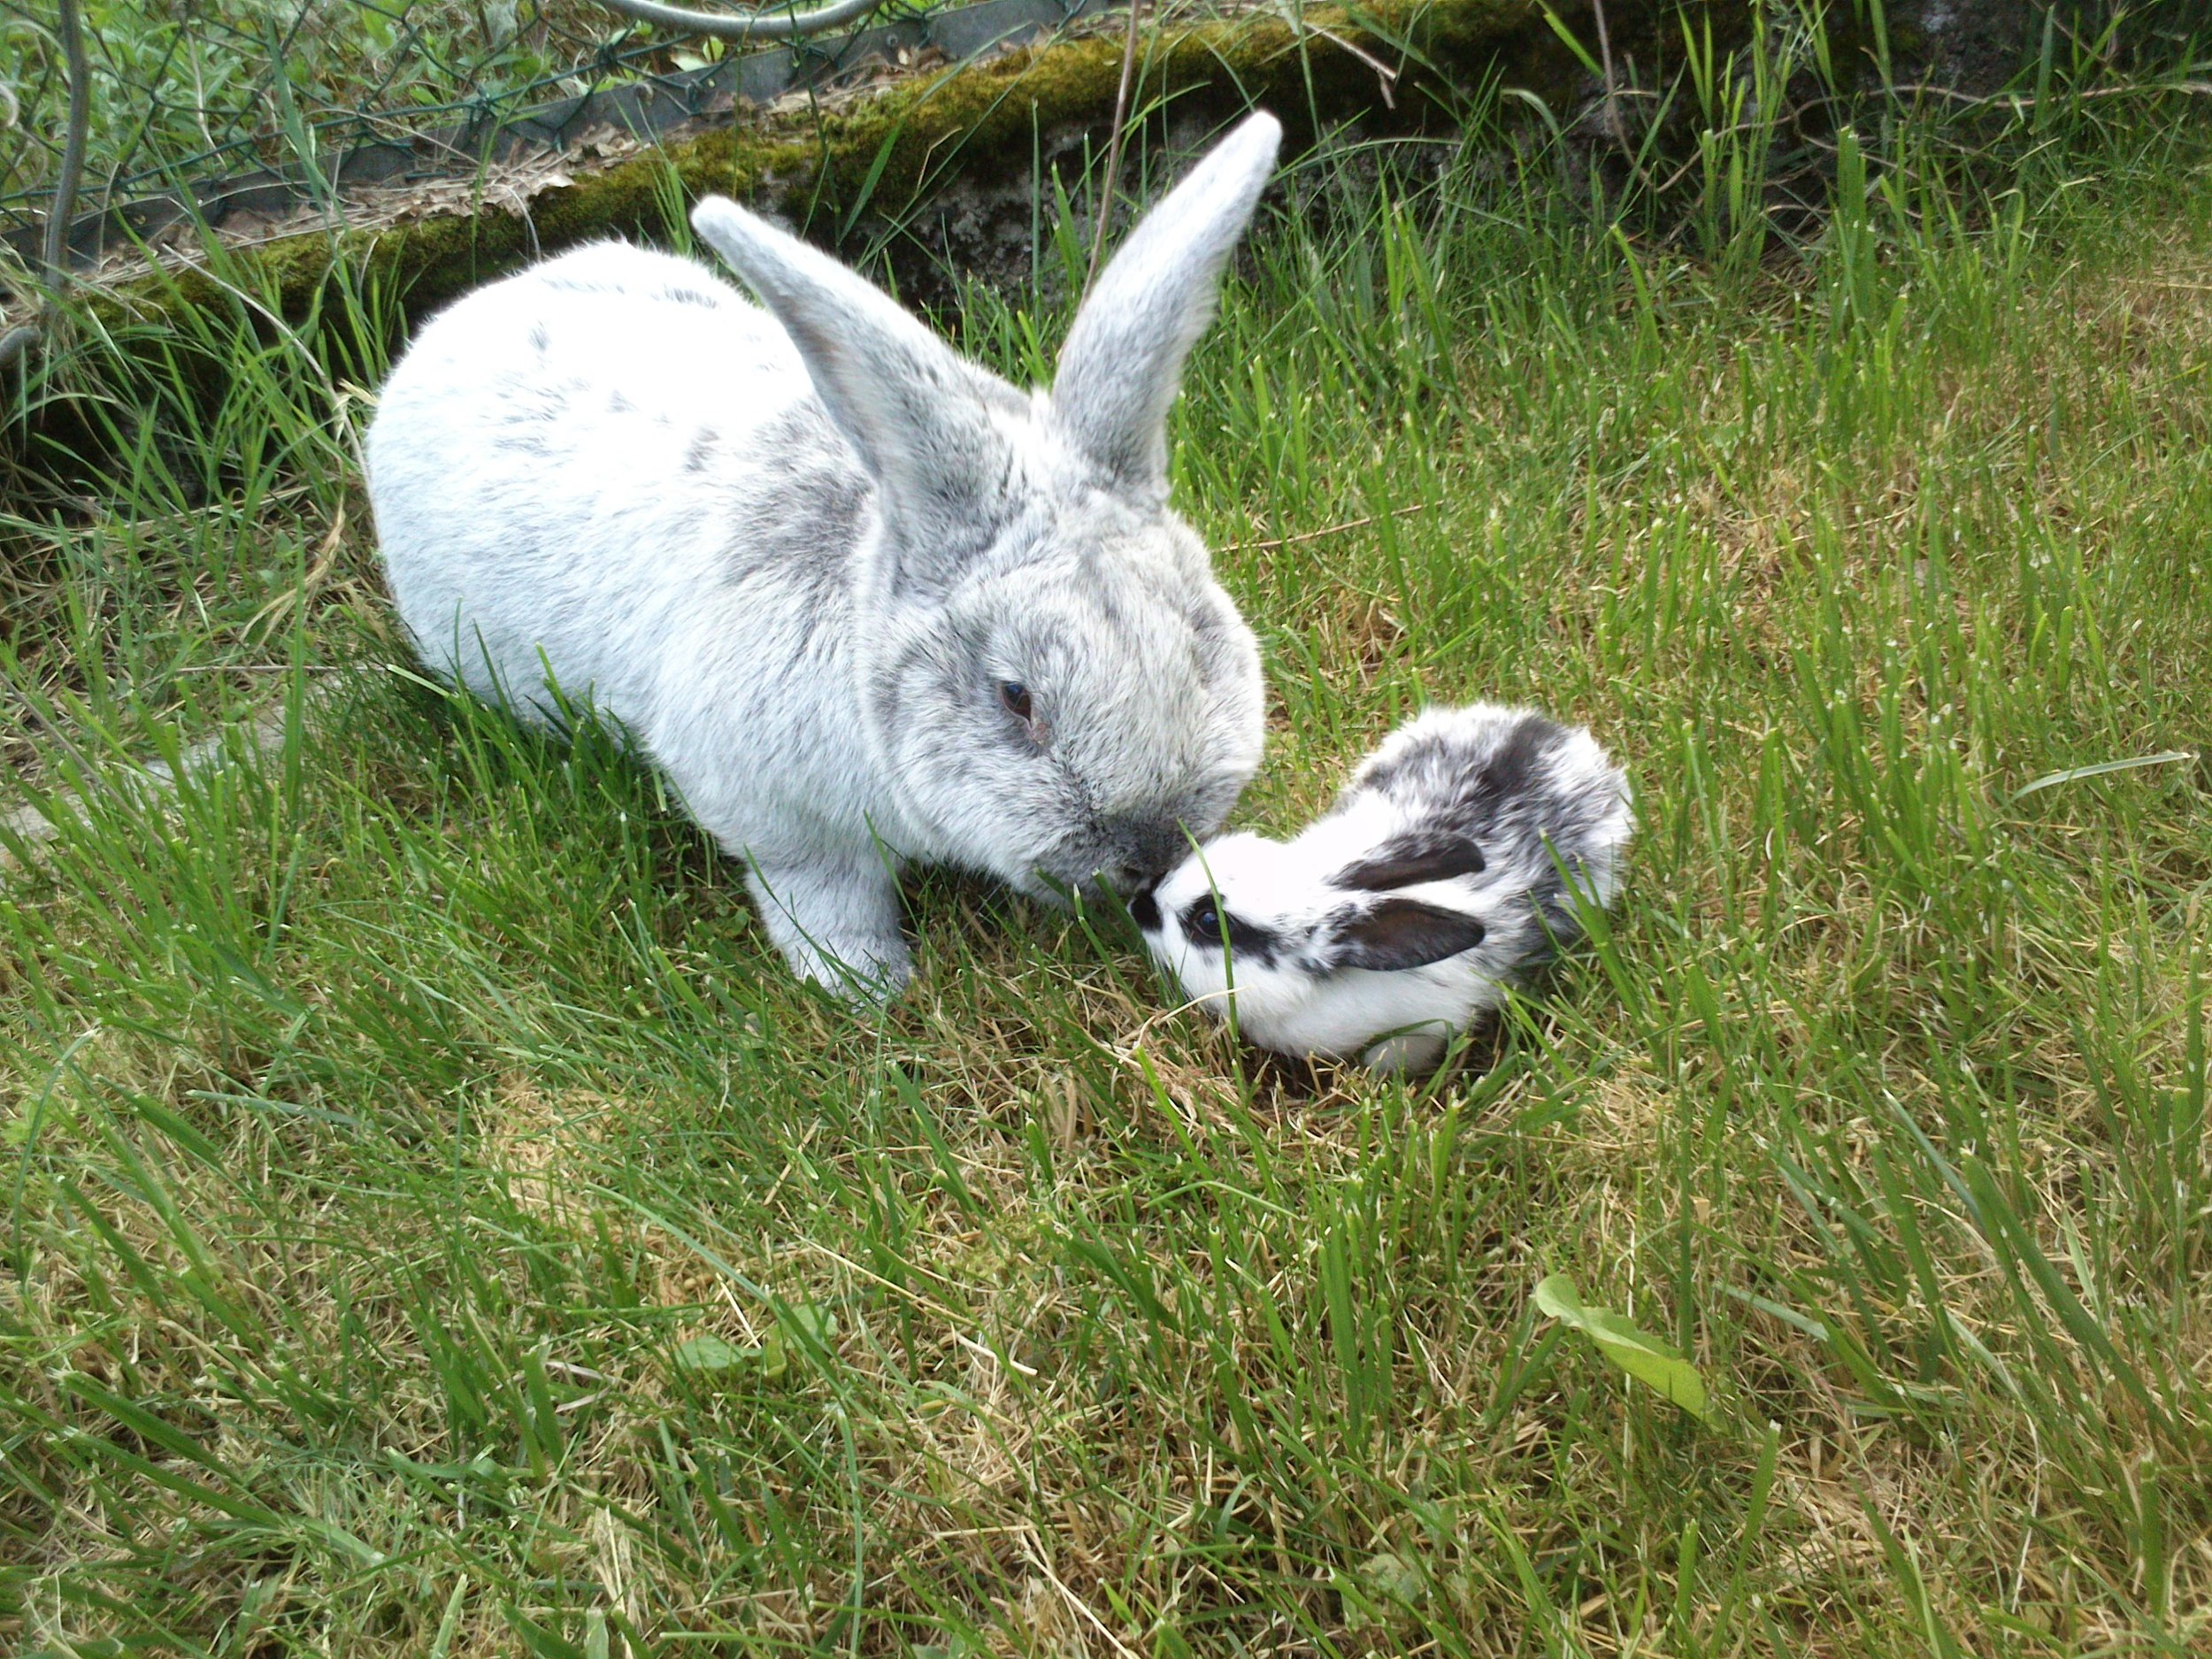 Big Bunny and Tiny Bunny Are Curious About Each Other